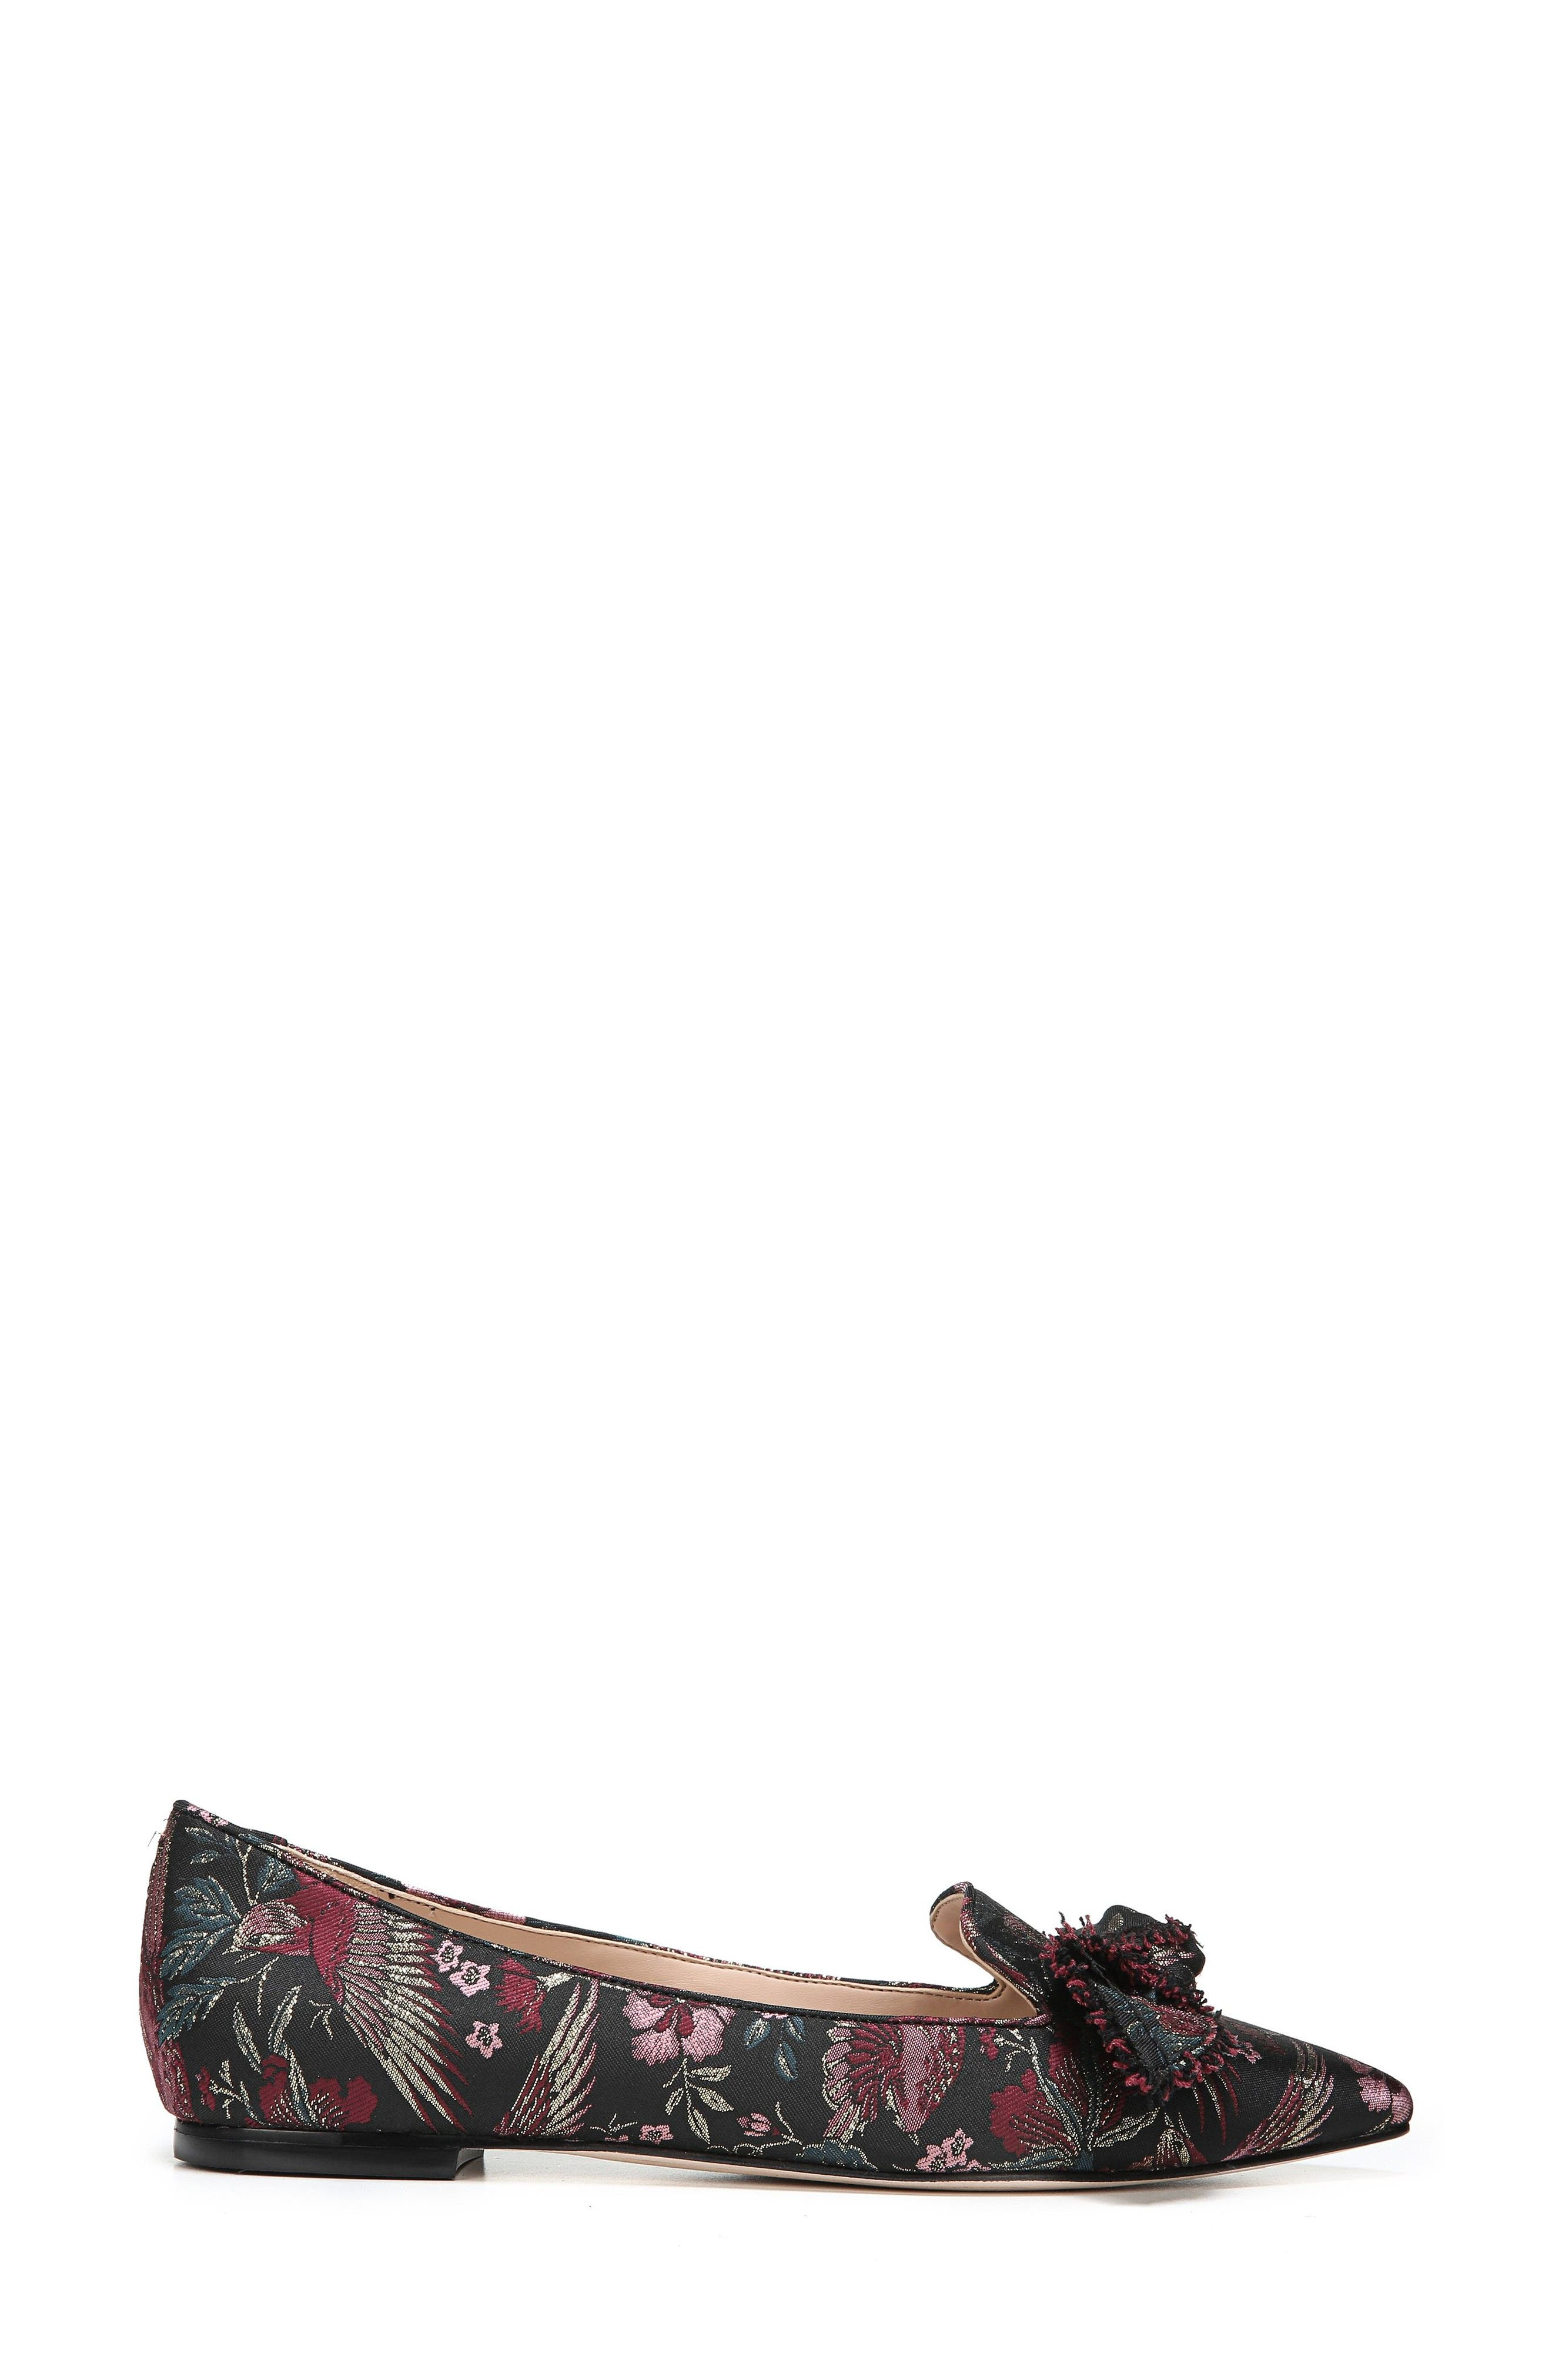 Rochester Bow Pointy Toe Flat,                             Alternate thumbnail 3, color,                             002